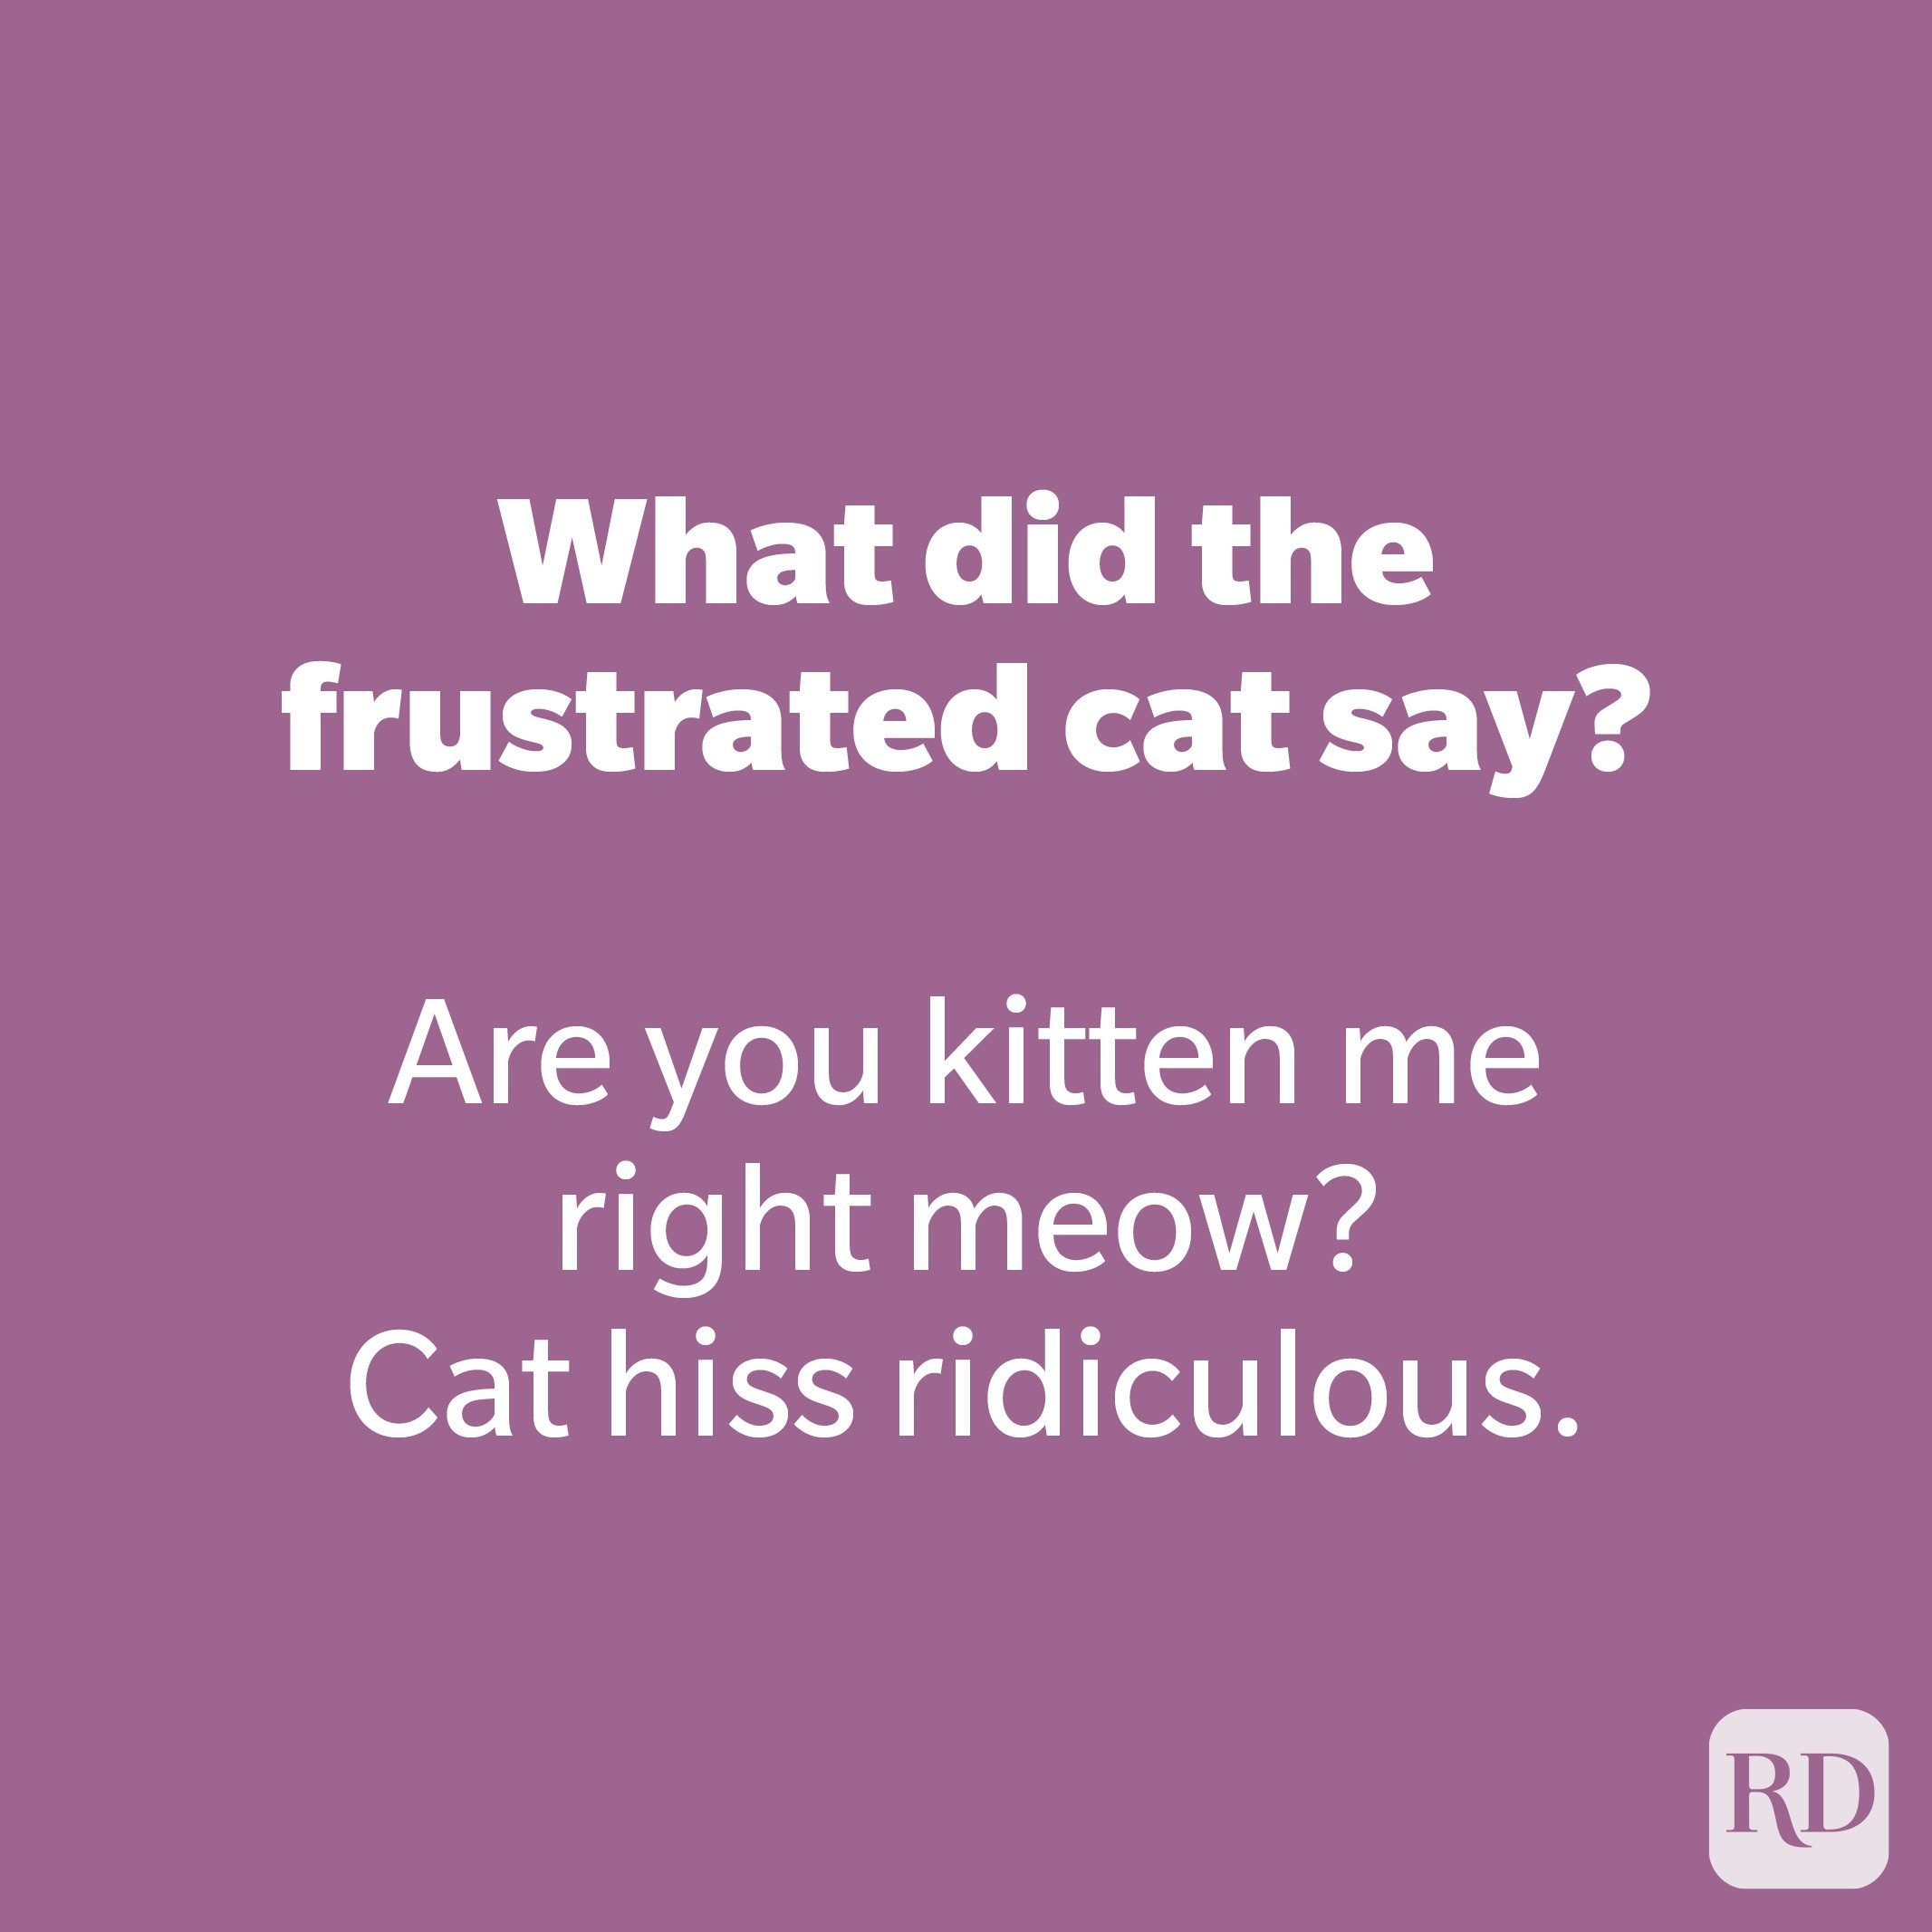 What did the frustrated cat say?